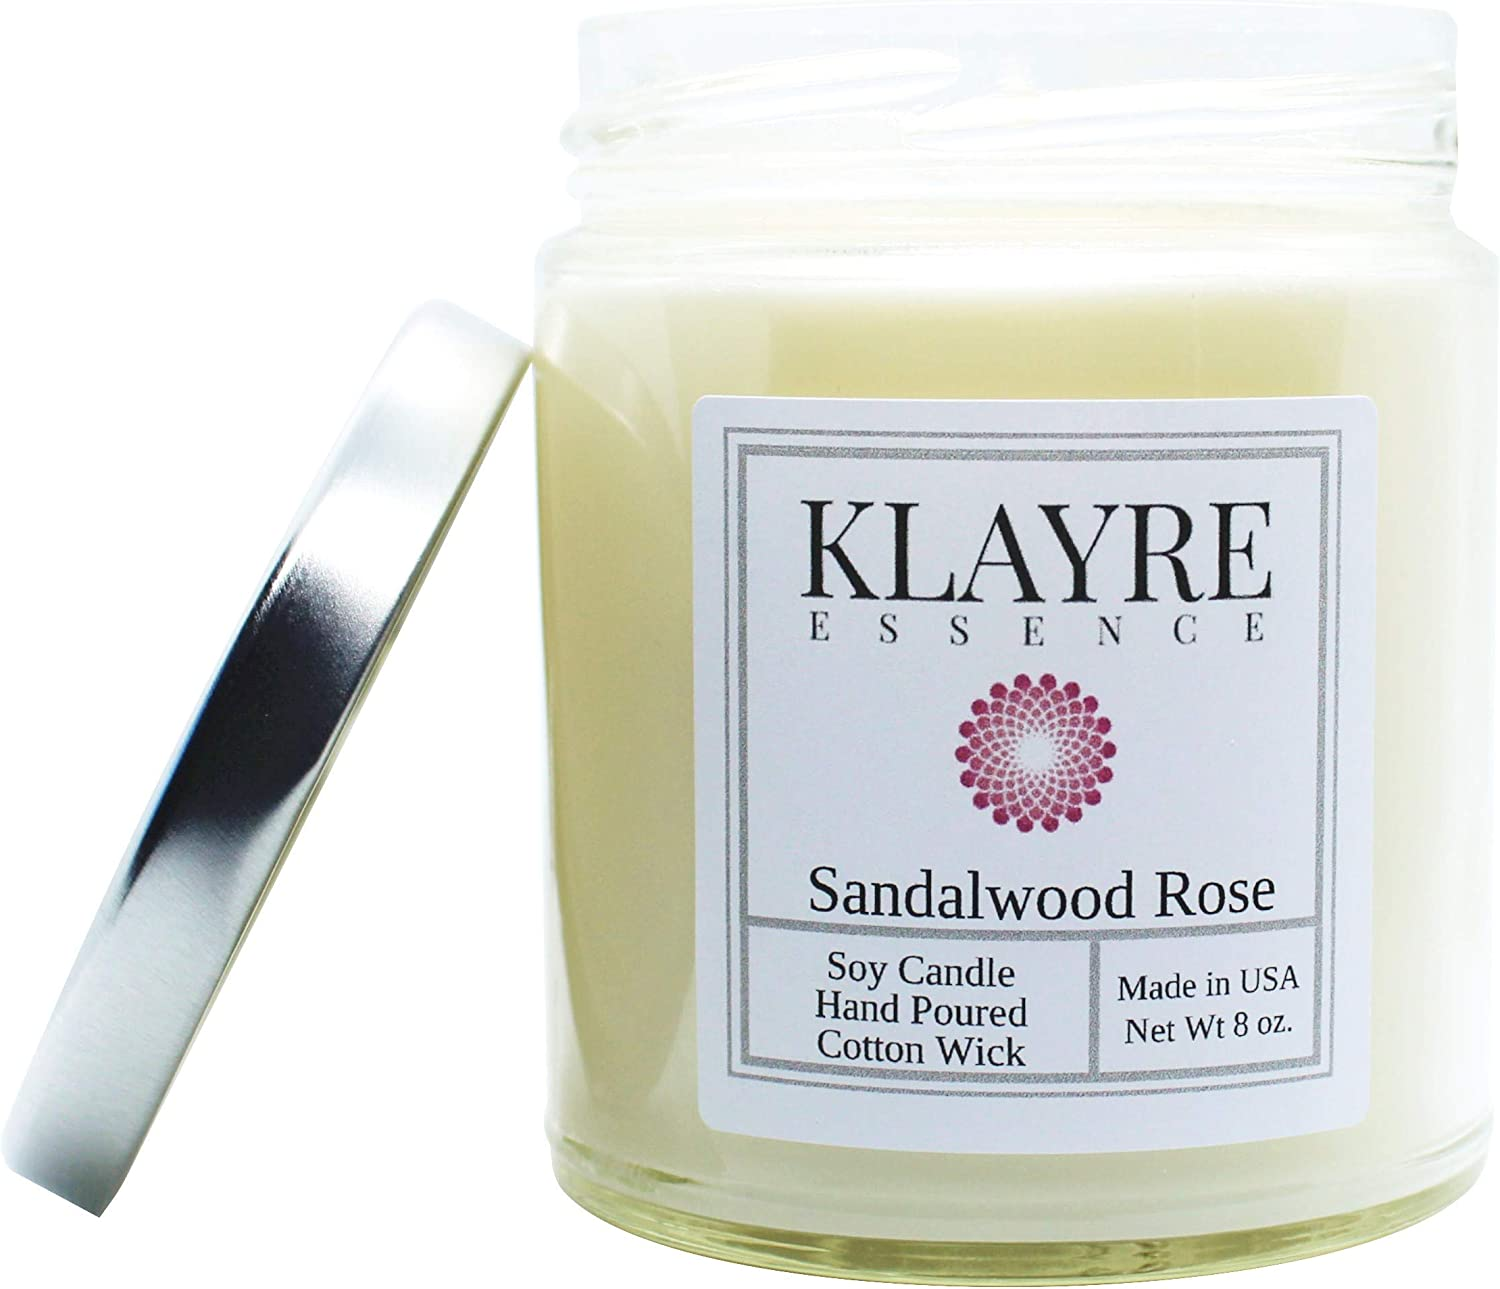 Eucalyptus Spearmint Scented Soy Candle Home Fragrance |Long Lasting 8 oz Jar Klayre Essence Hand Poured in the USA. Aromatherapy /& Relaxation